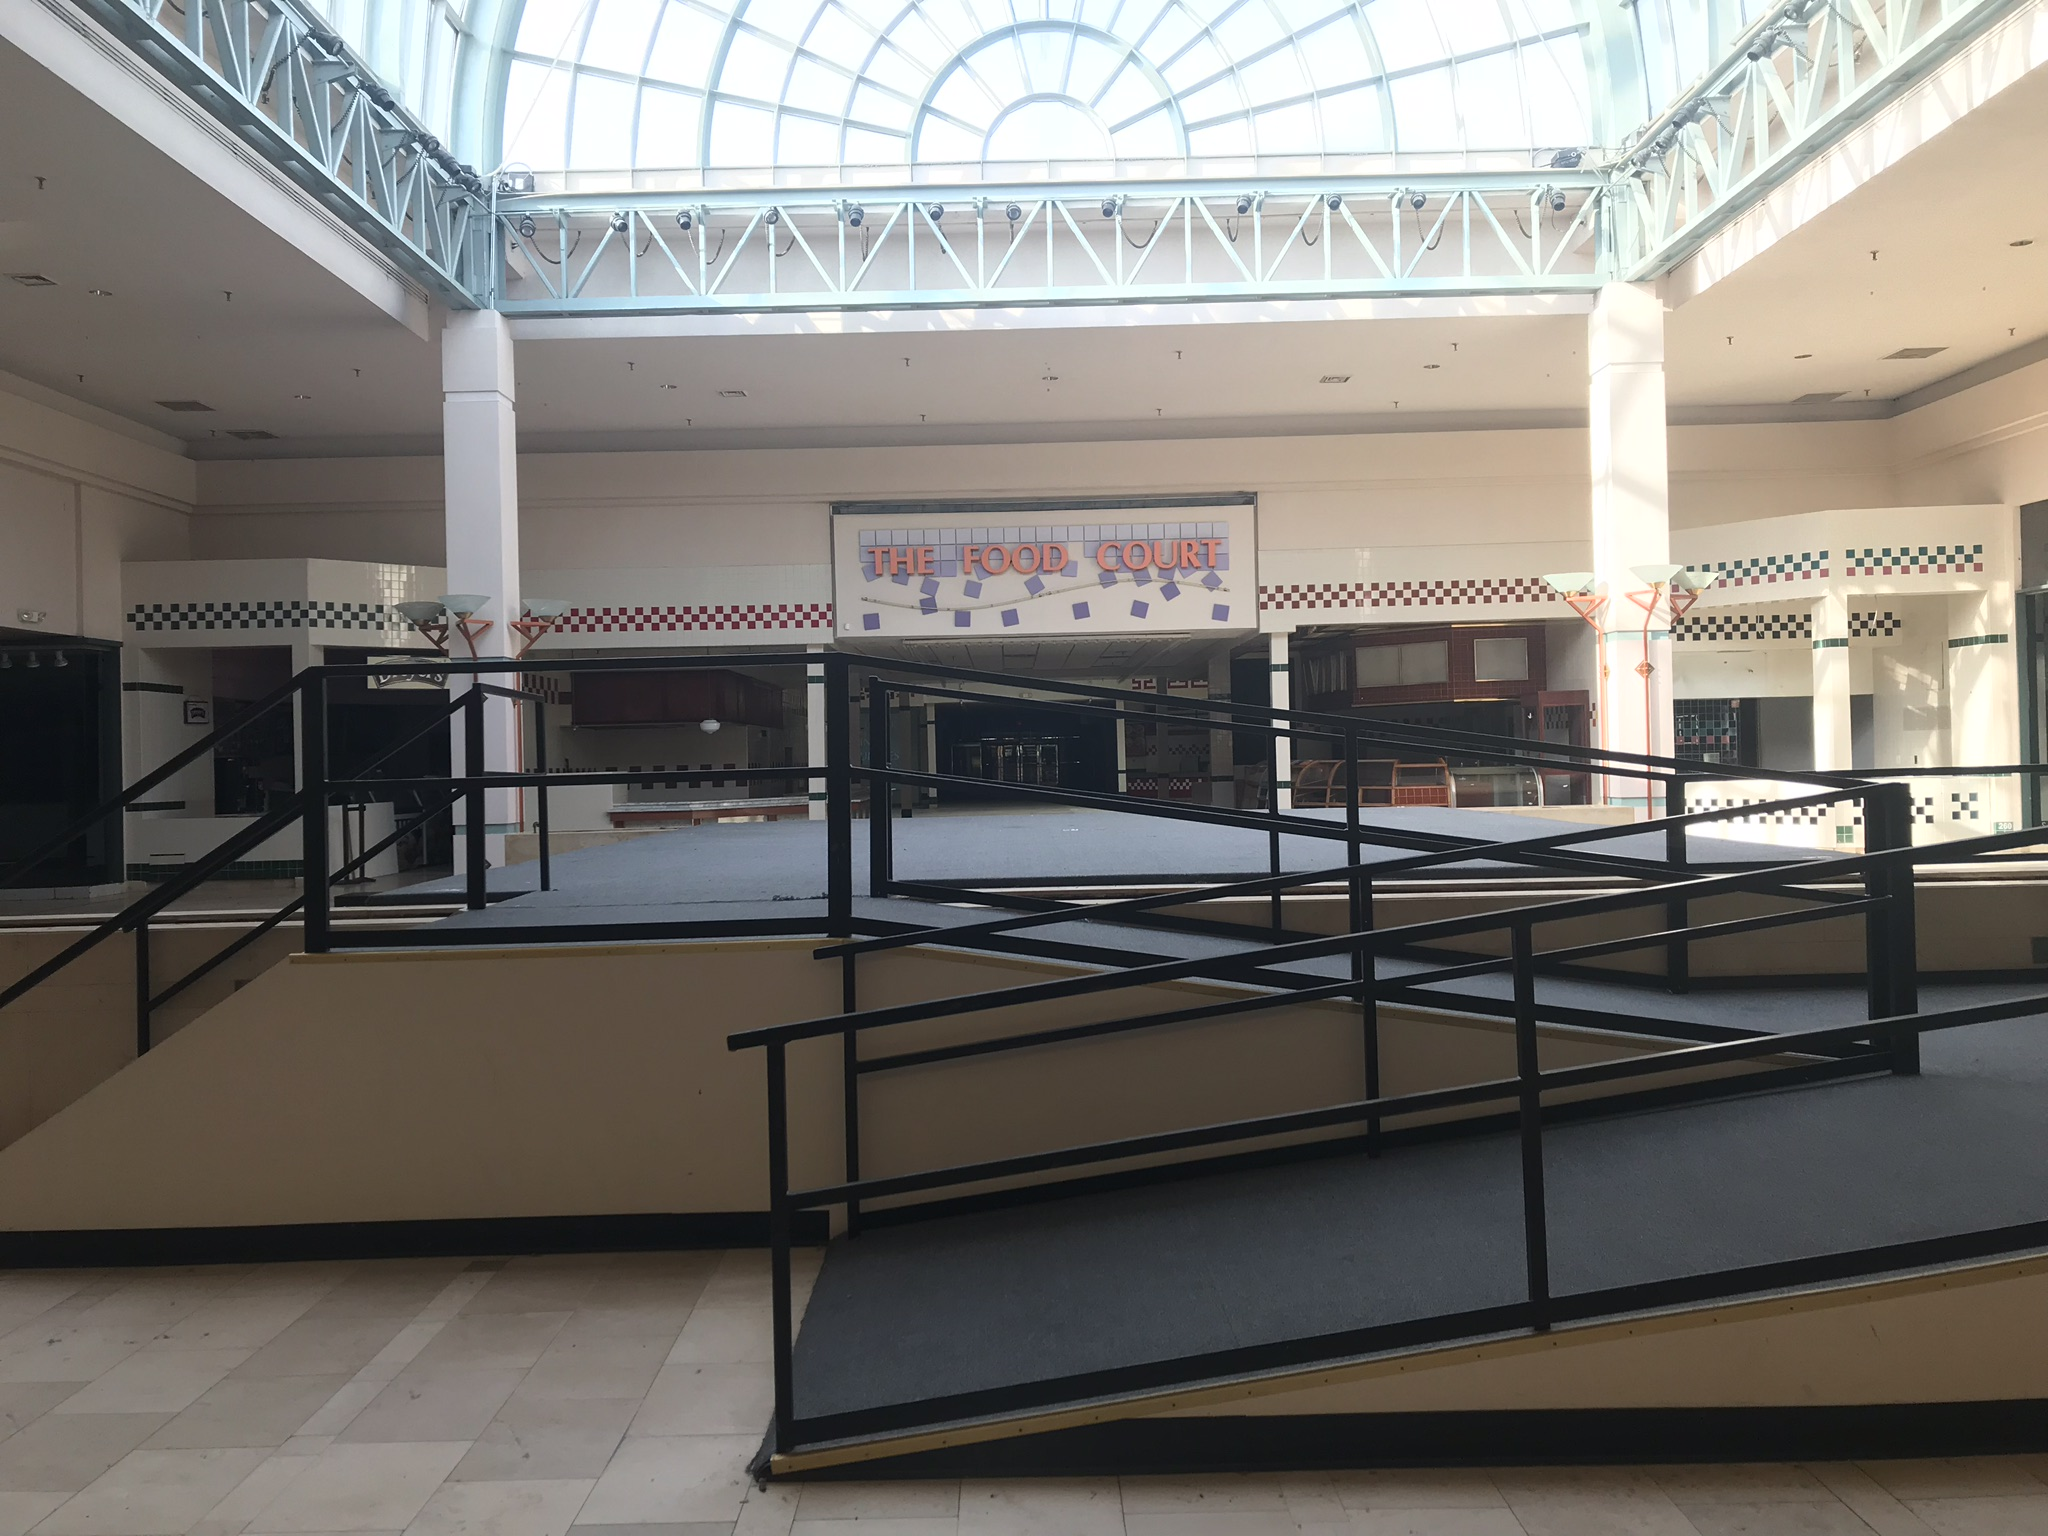 Northwest Mall December 2017 Update